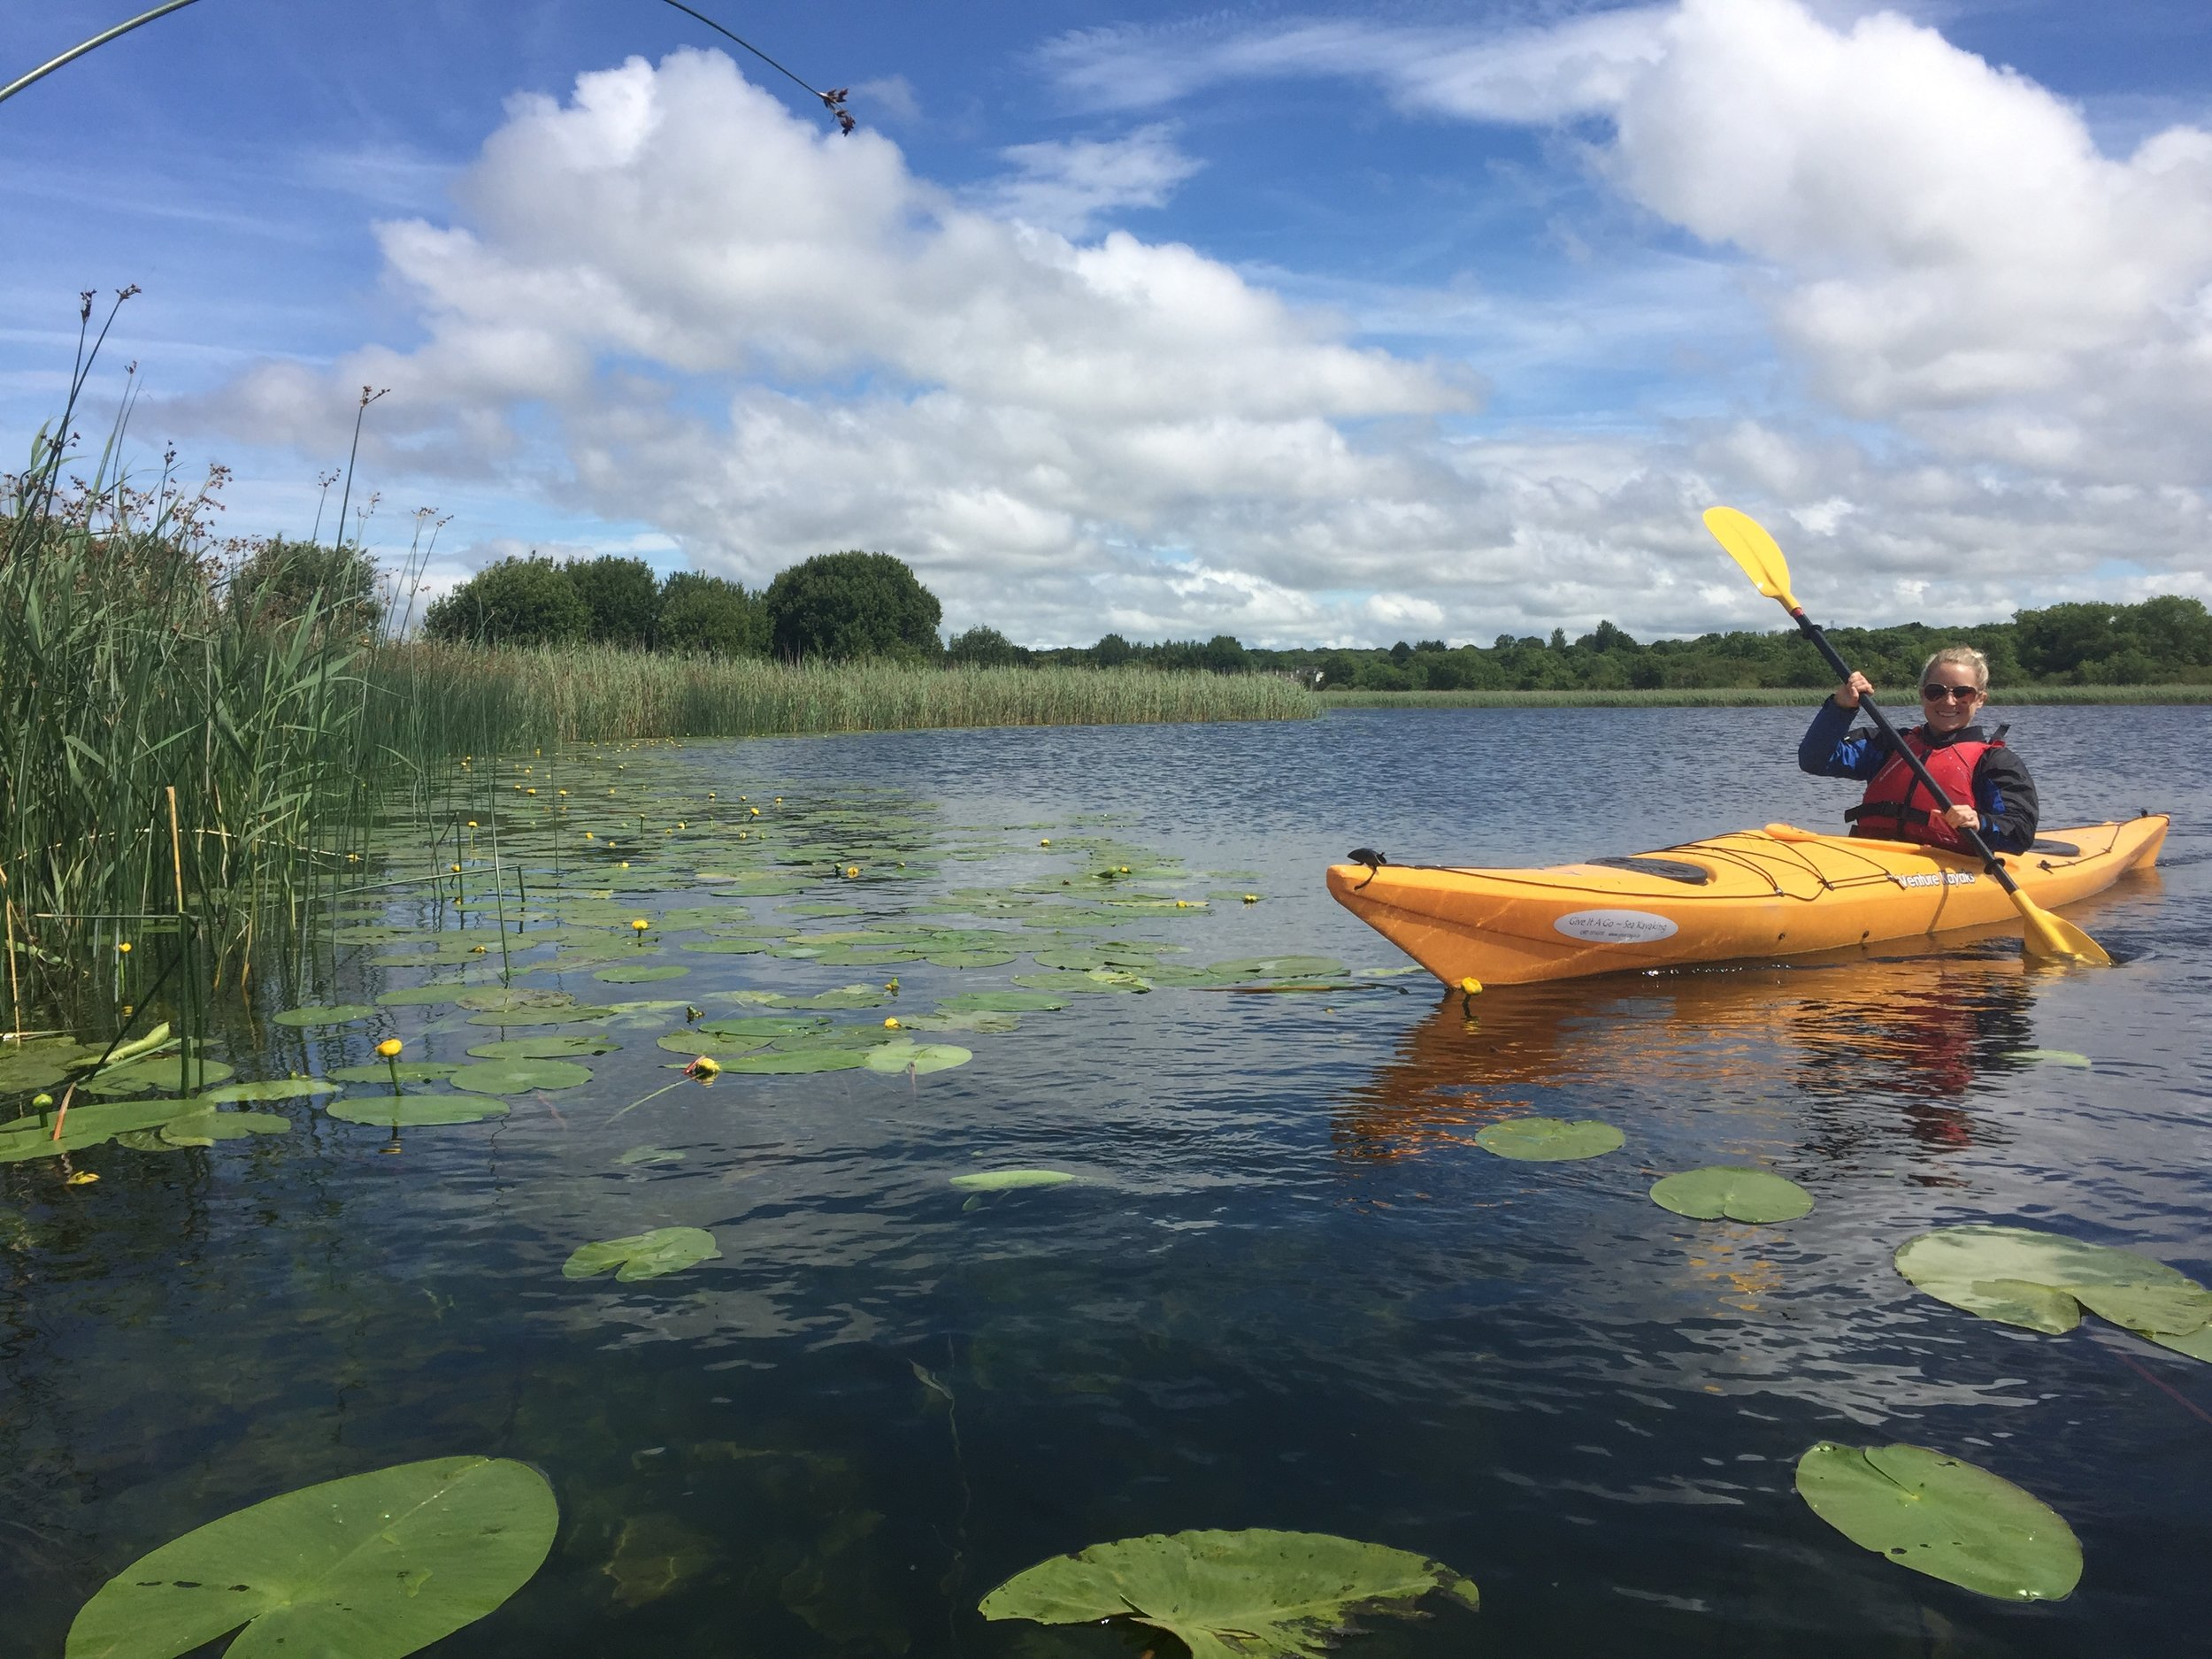 Kayaking on Galways beautiful Corrib river